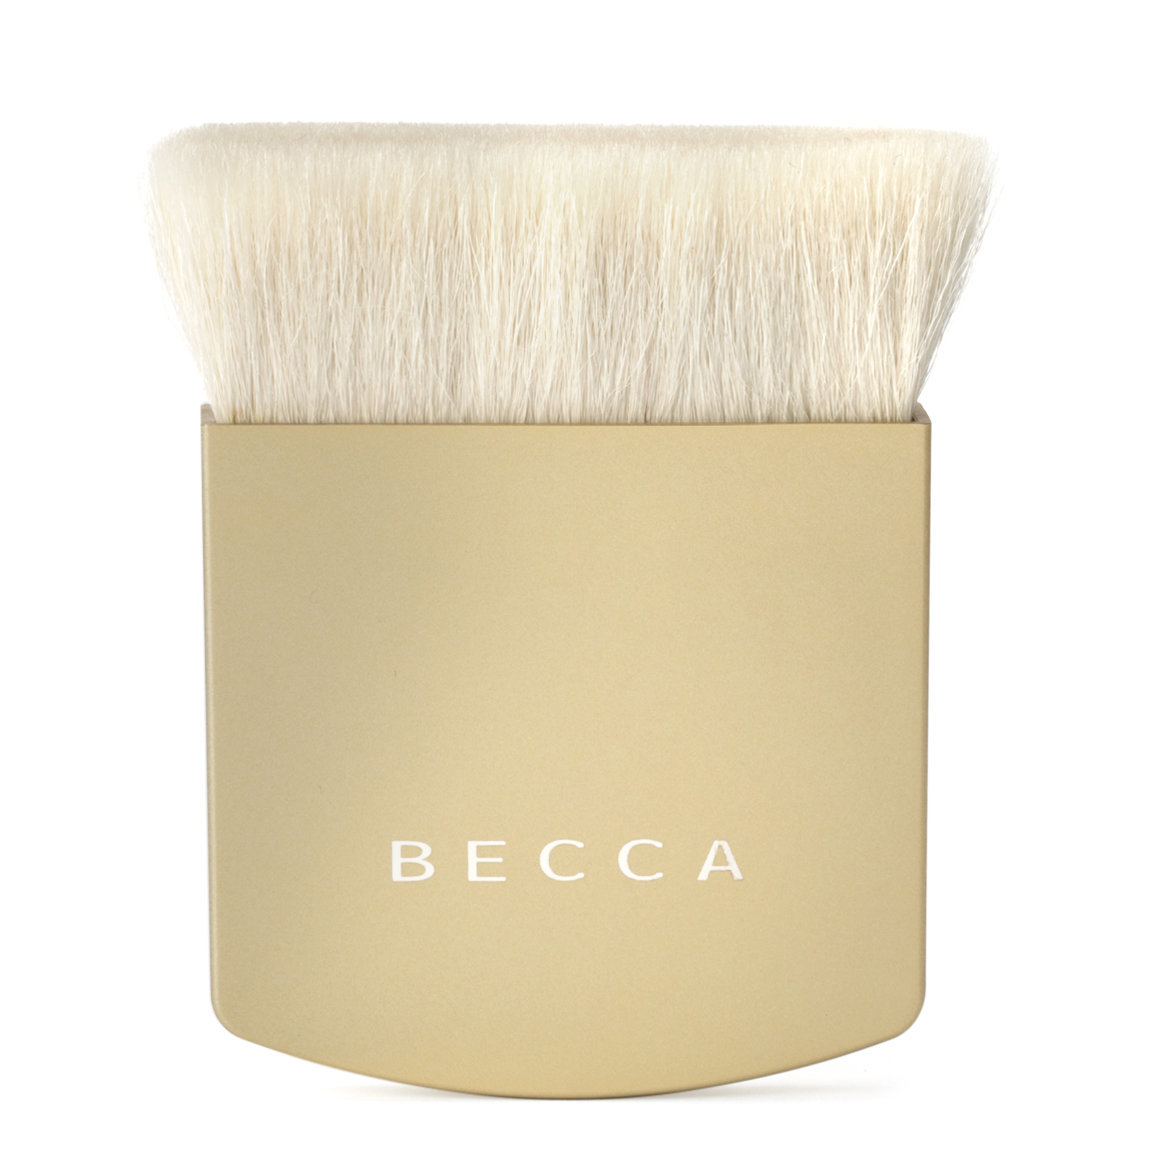 BECCA The One Perfecting Brush Gold product smear.